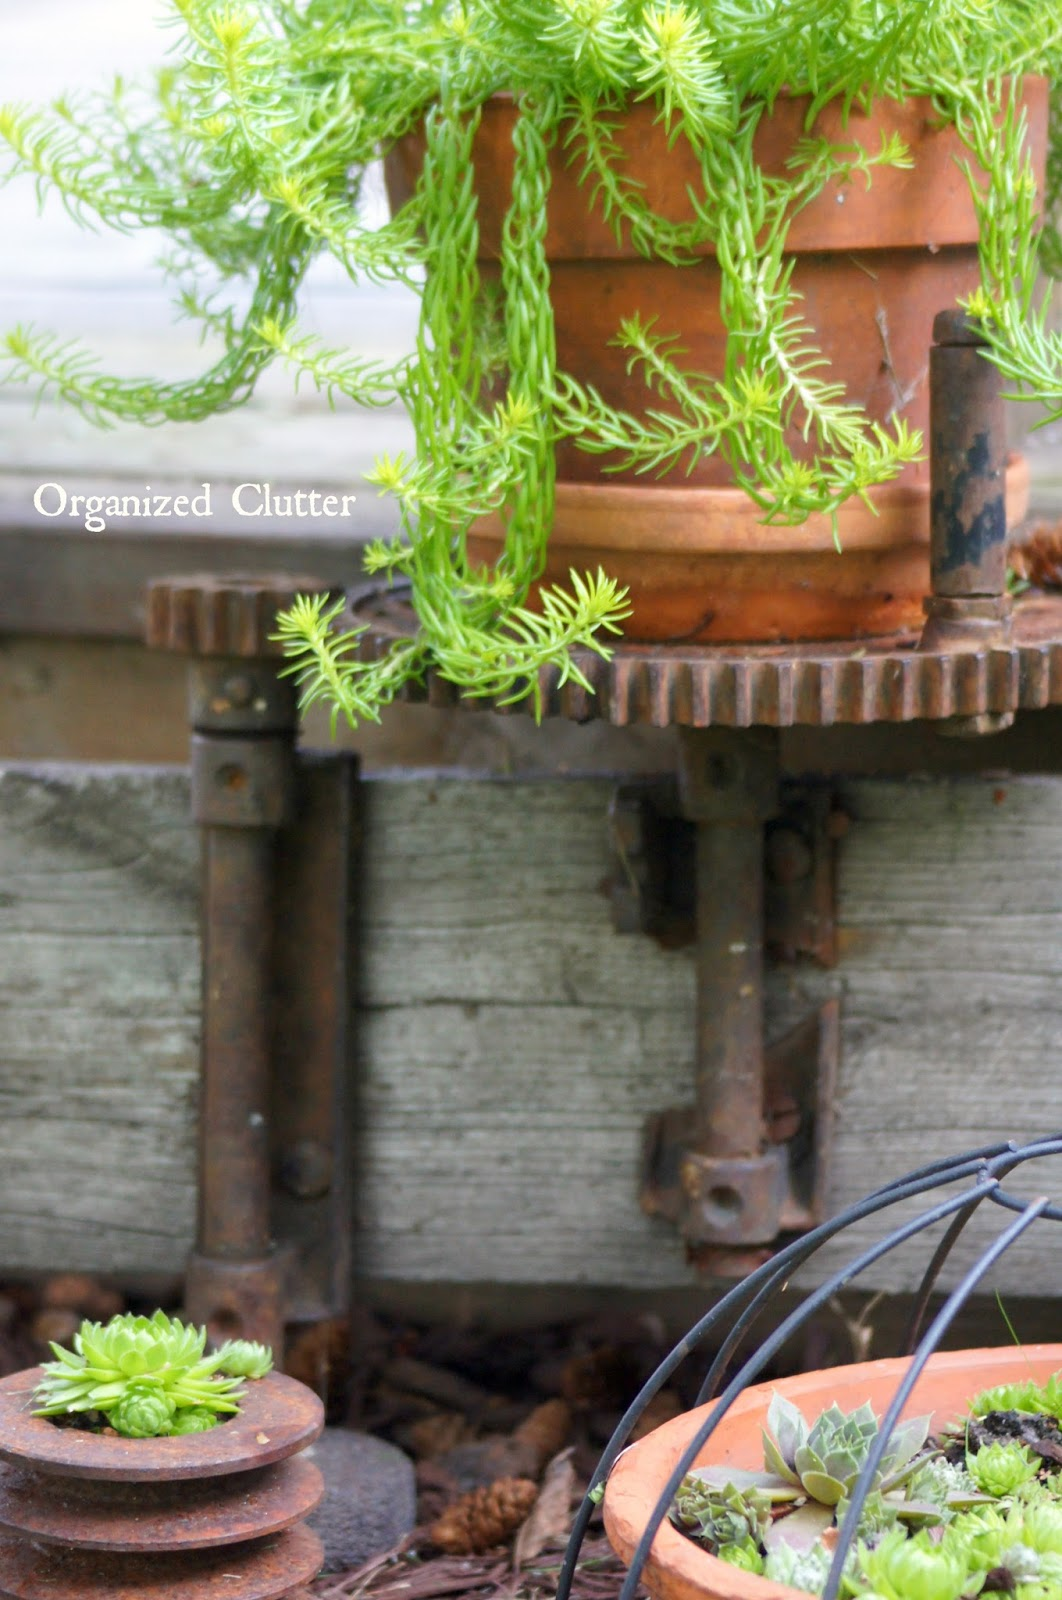 Gears, Pulleys, Old Wood, and Succulents www.organizedclutterqueen.blogspot.com